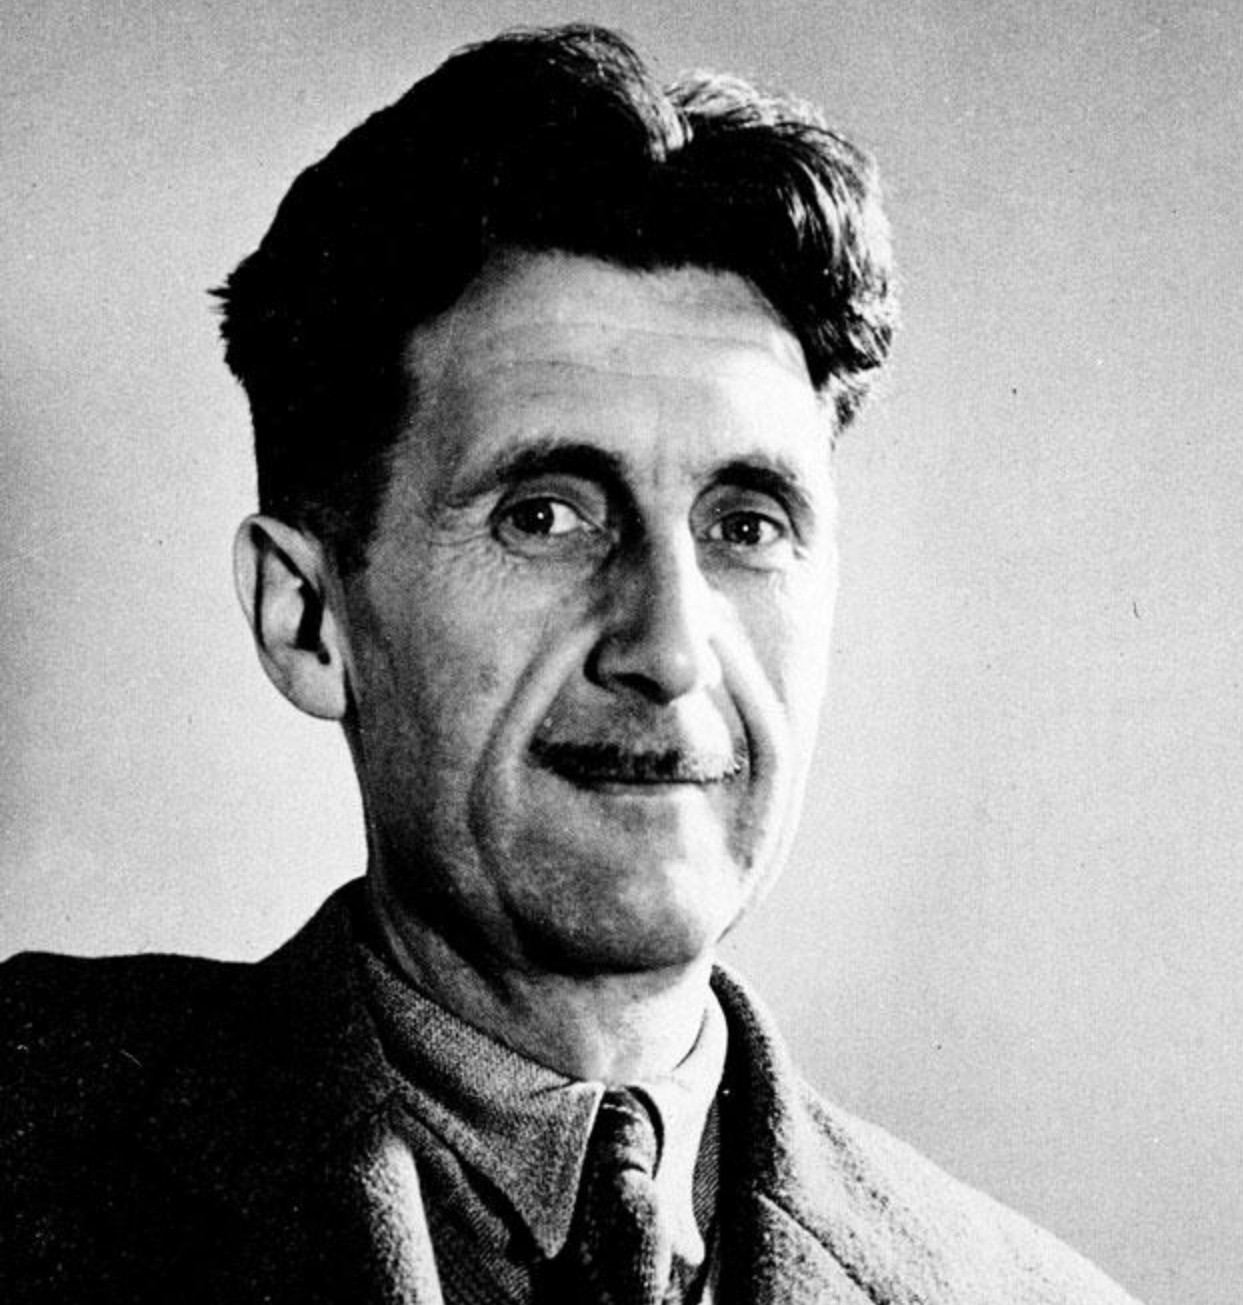 the language of the totalitarian society as portrayed in the novel 1984 1984 george orwell against the dangers of a totalitarian society in in which the writer aims to portray the perfect human society, a novel of negative utopia.